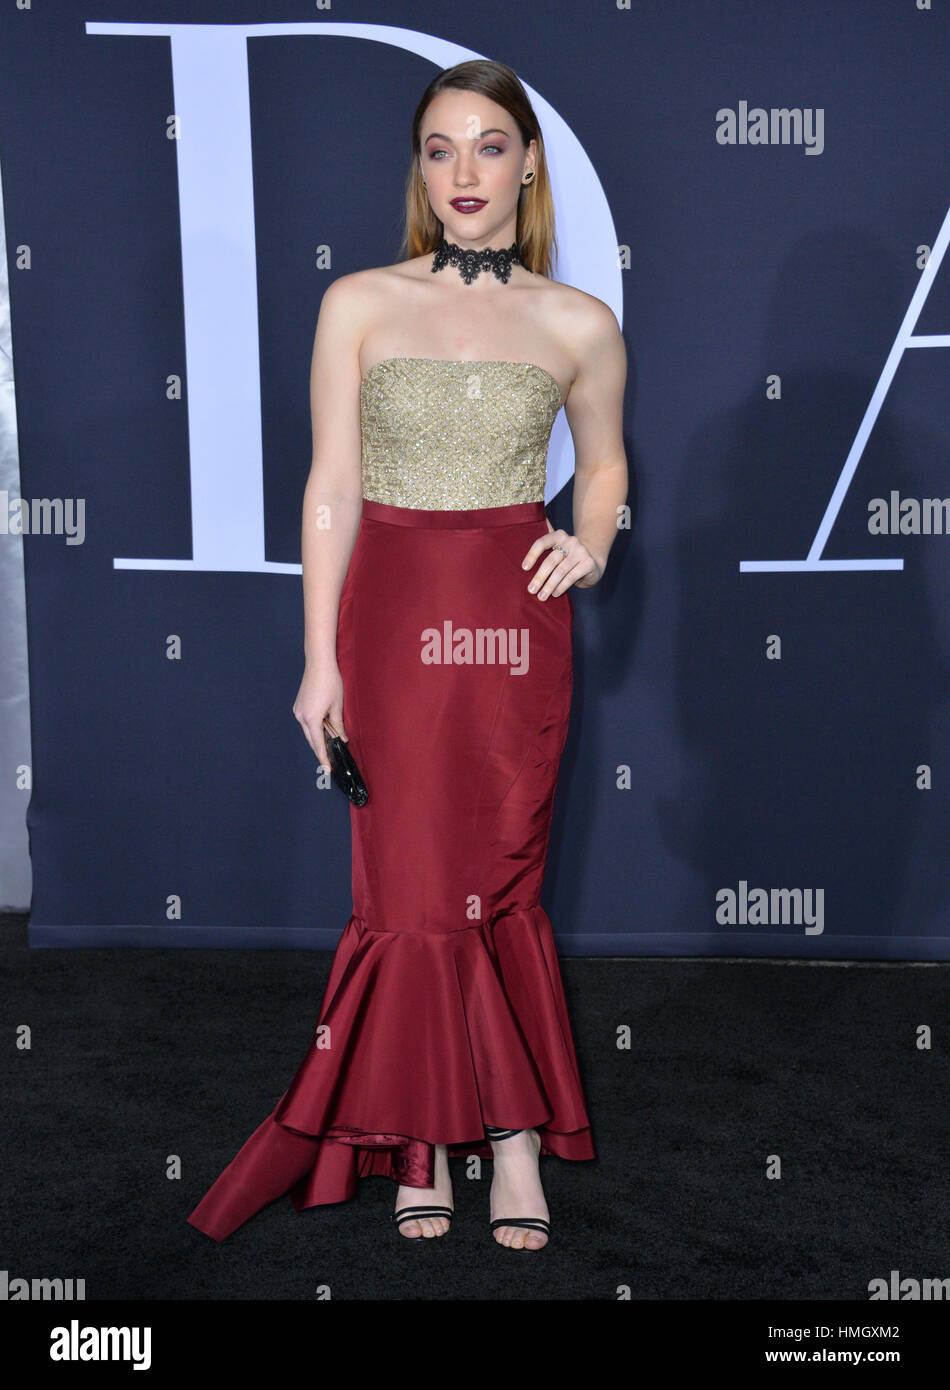 "Los Angeles, California, USA. 2nd February 2017. Actress Violett Beane at the premiere of ""Fifty Shades Darker"" Stock Photo"